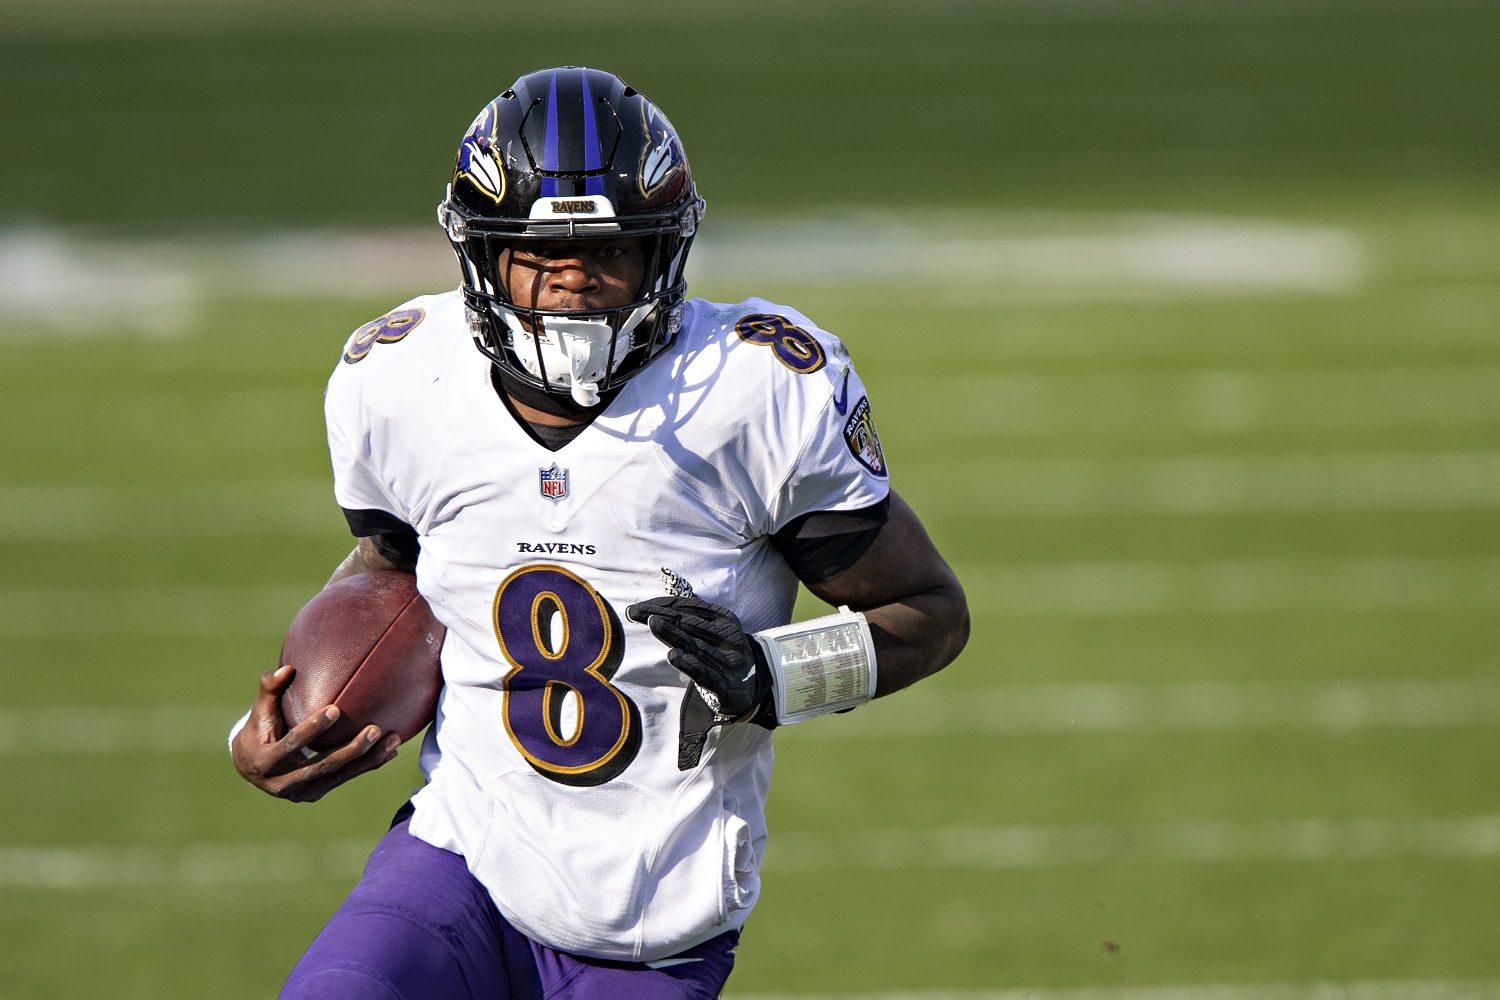 Quarterback Lamar Jackson, coming off his second straight 1,000-yard rushing season, is off to a slow start in contract negotiations.